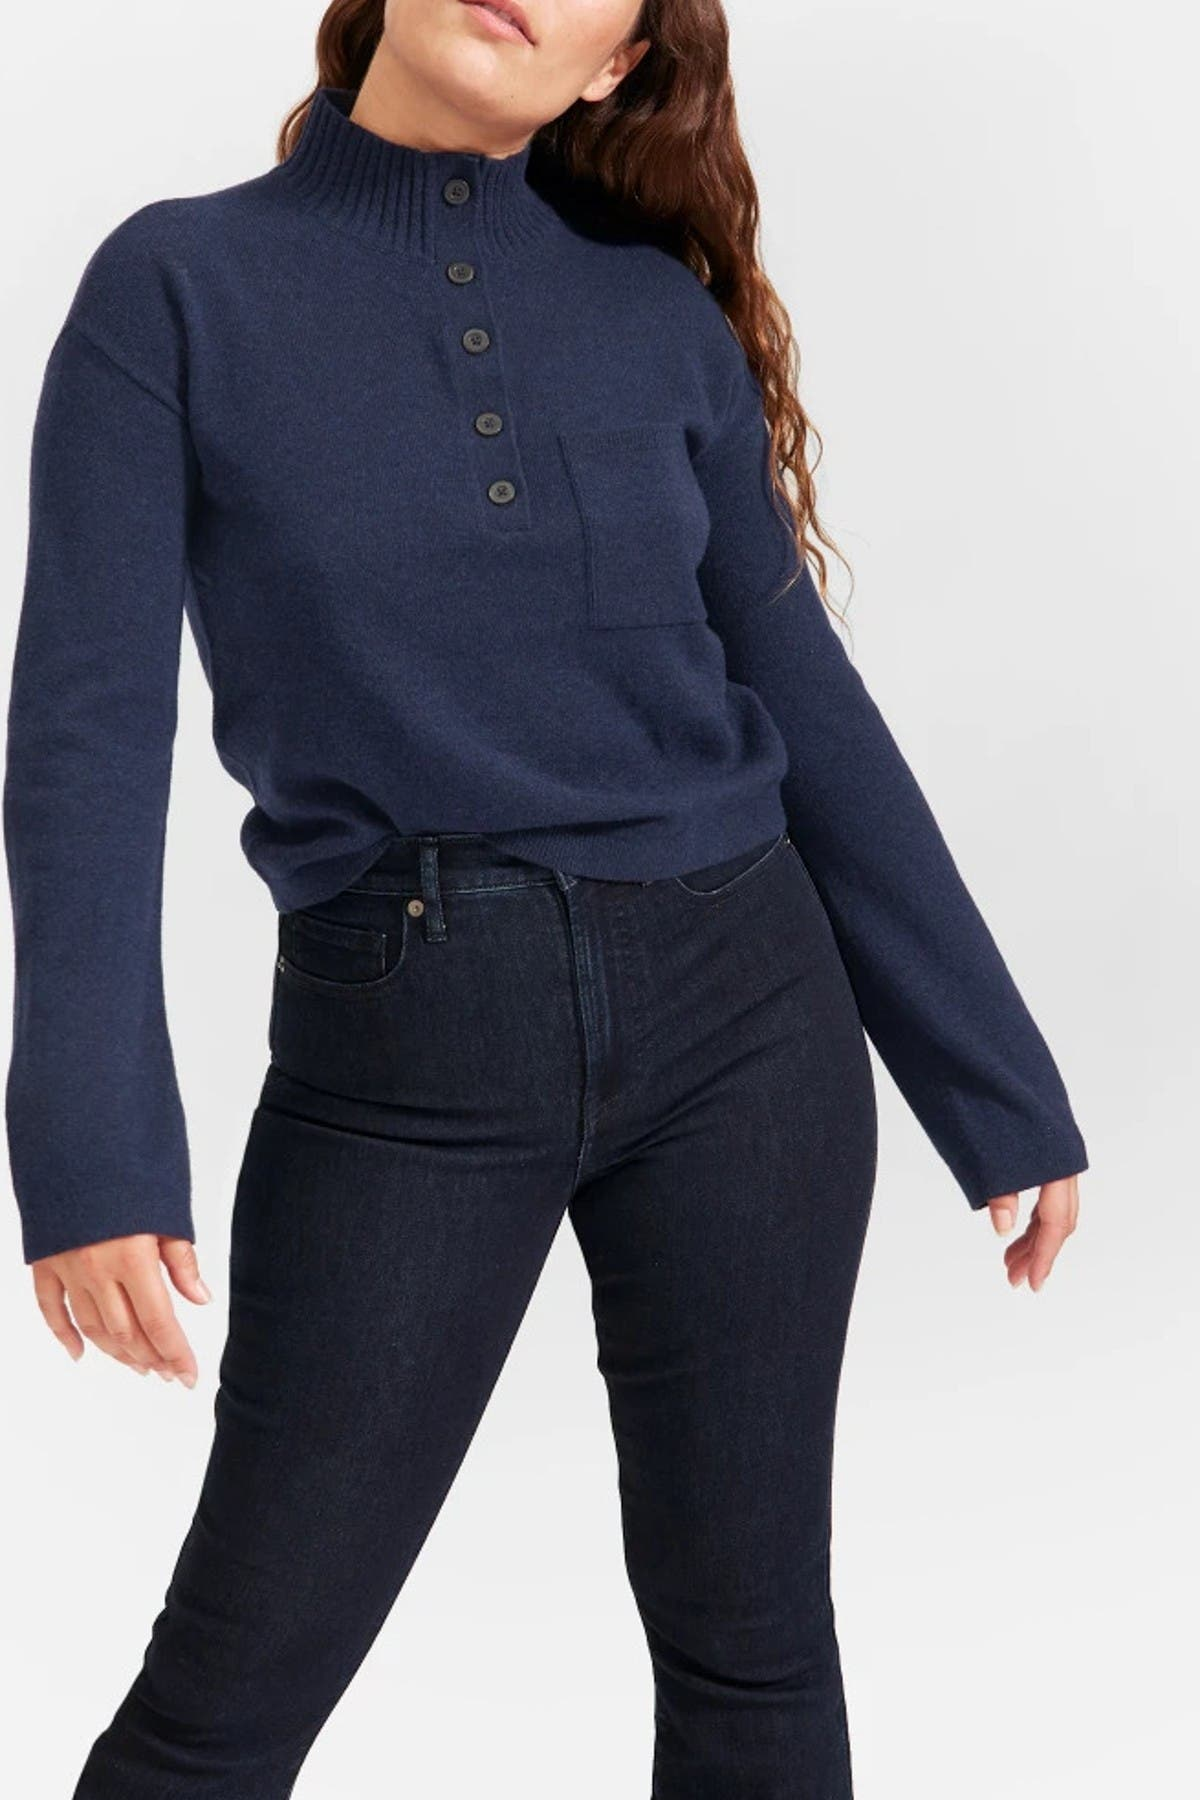 Image of EVERLANE The Recashmere Button Mock Neck Sweater